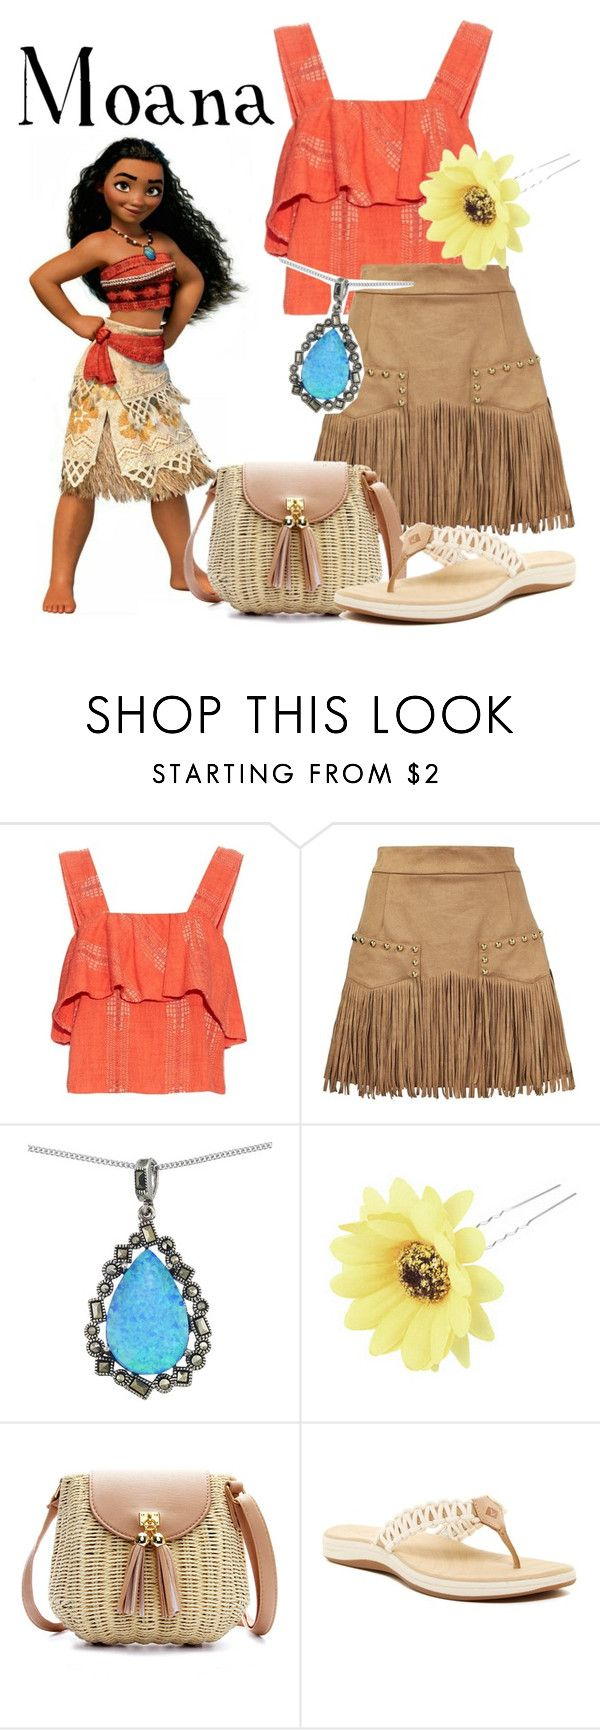 """Moana disneybound"" by isabellefadel ❤ liked on Polyvore featuring ace & jig, Just Cavalli, Lord & Taylor, Chicnova Fashion and Sperry"